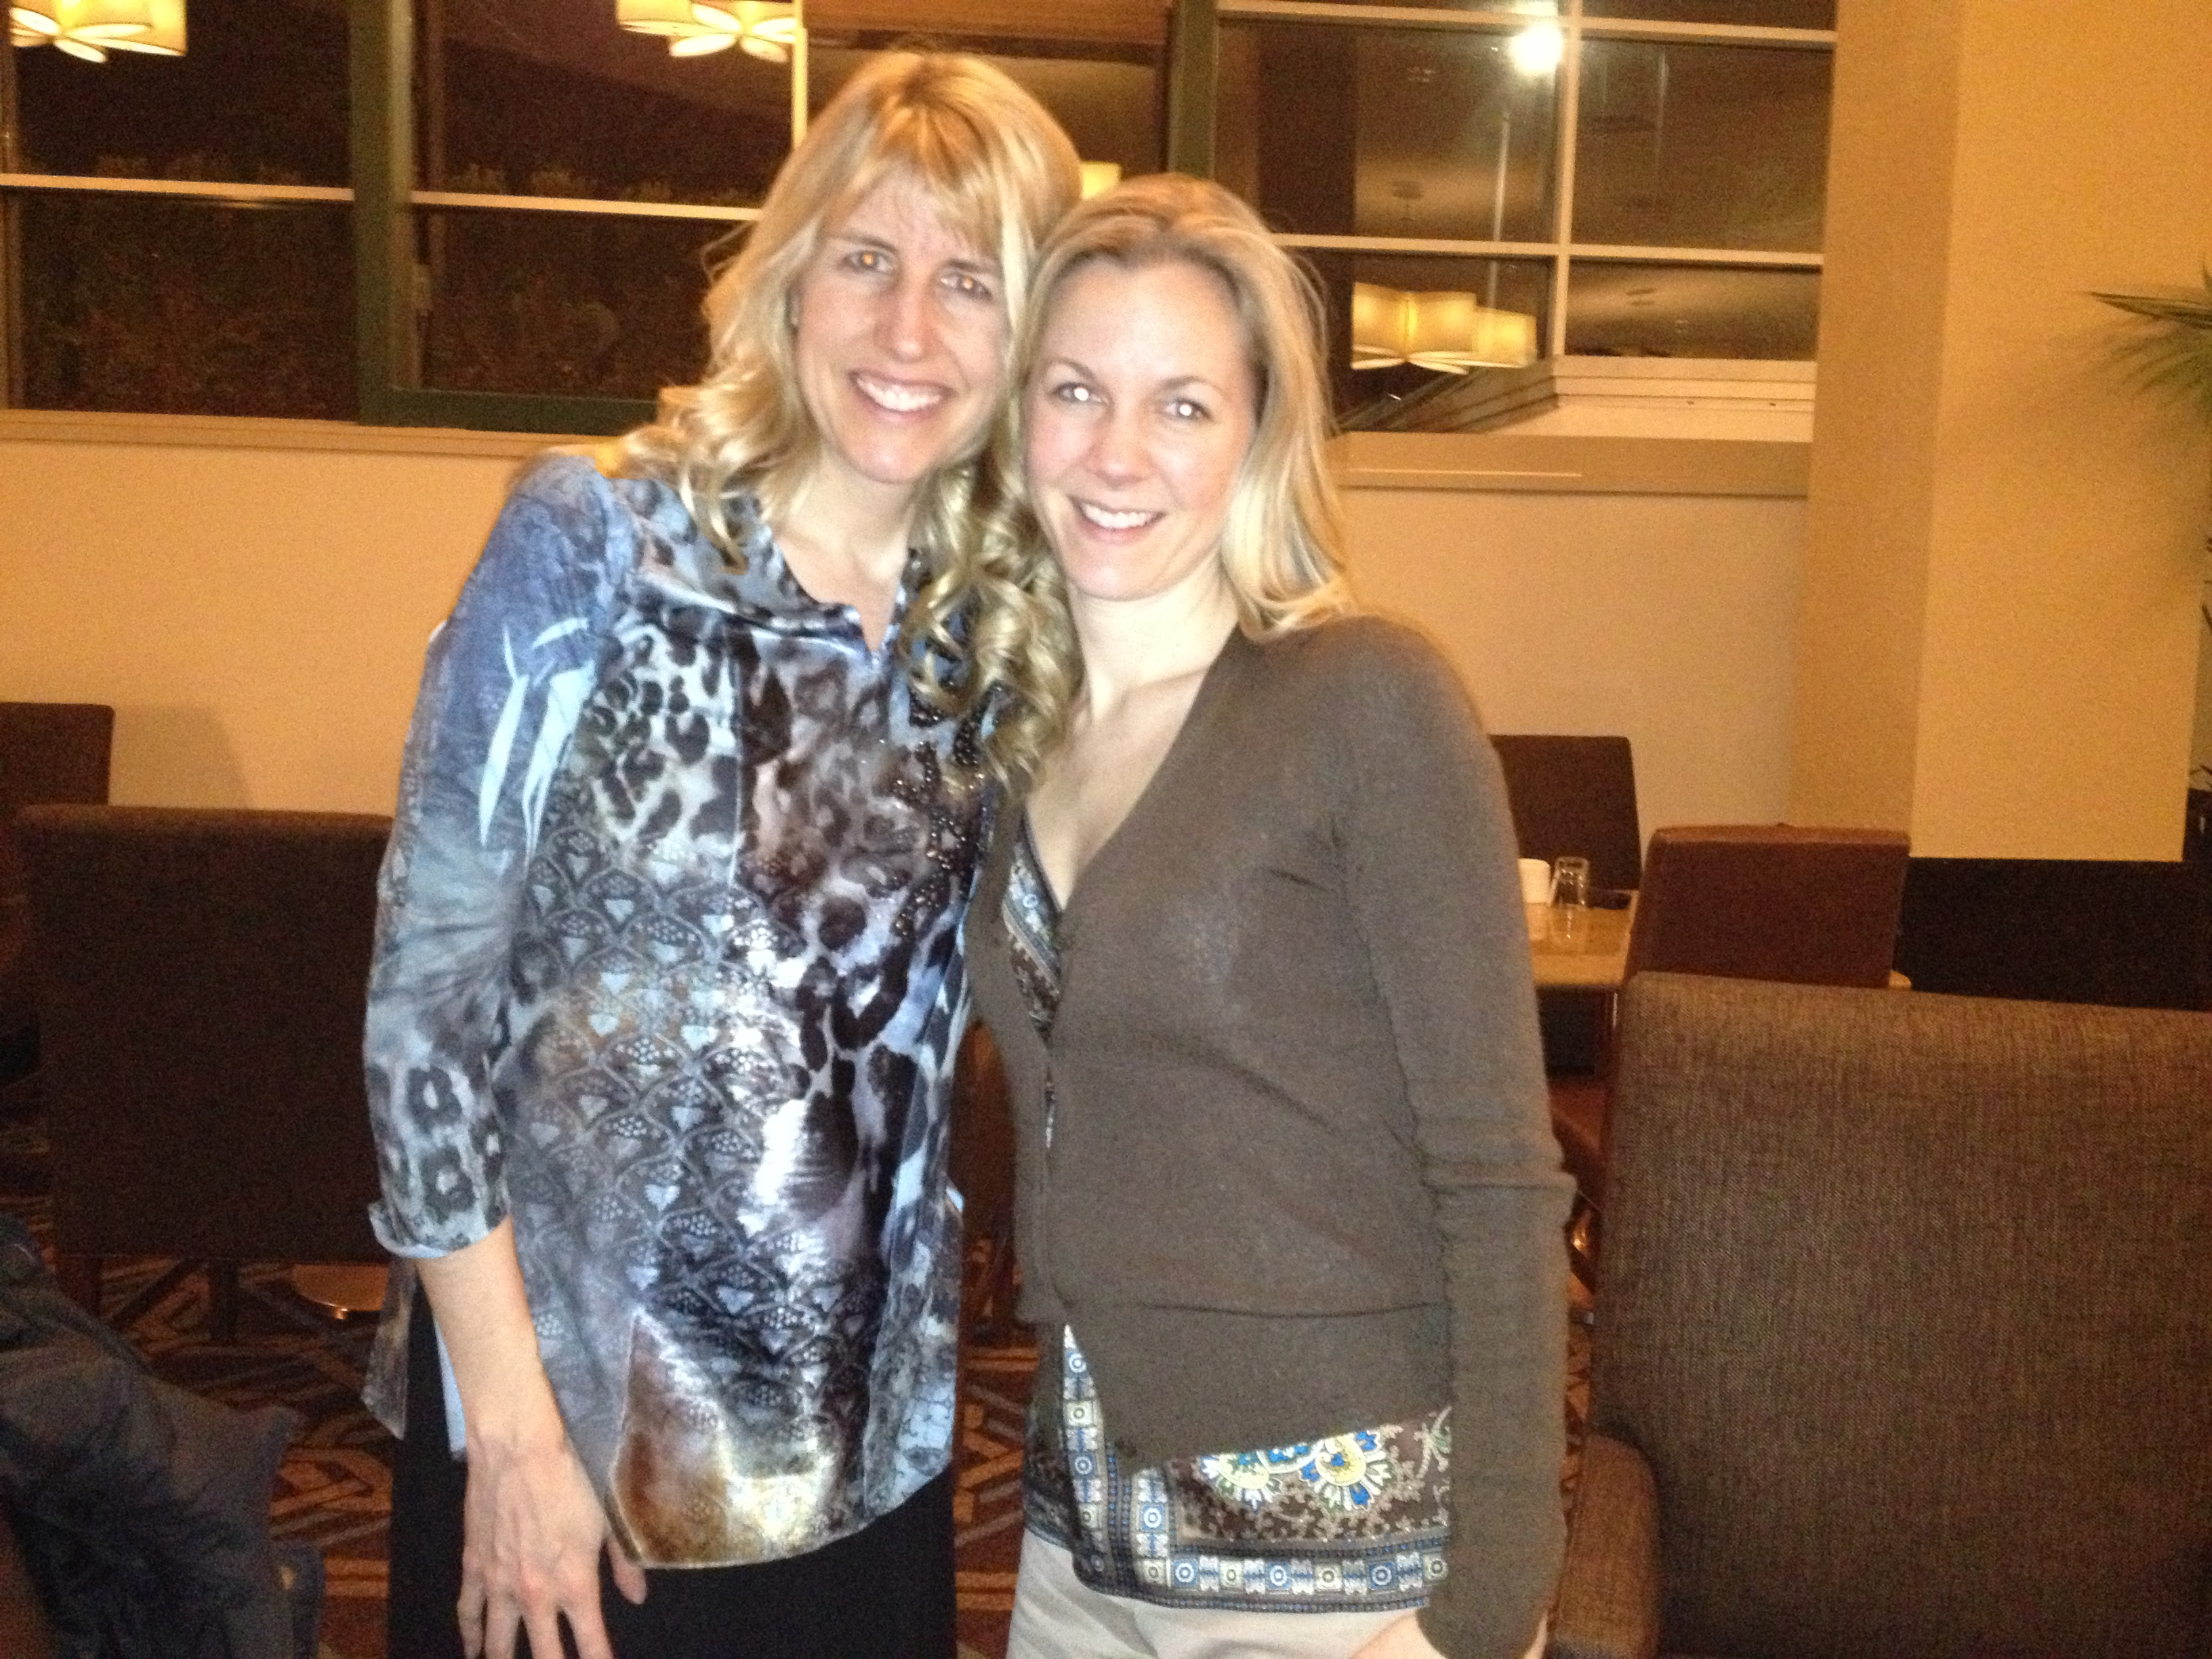 Me + Shelley Riutta, President and Founder of the Global Association of Holistic Psychotherapy and Coaching, hanging after a mastermind meeting